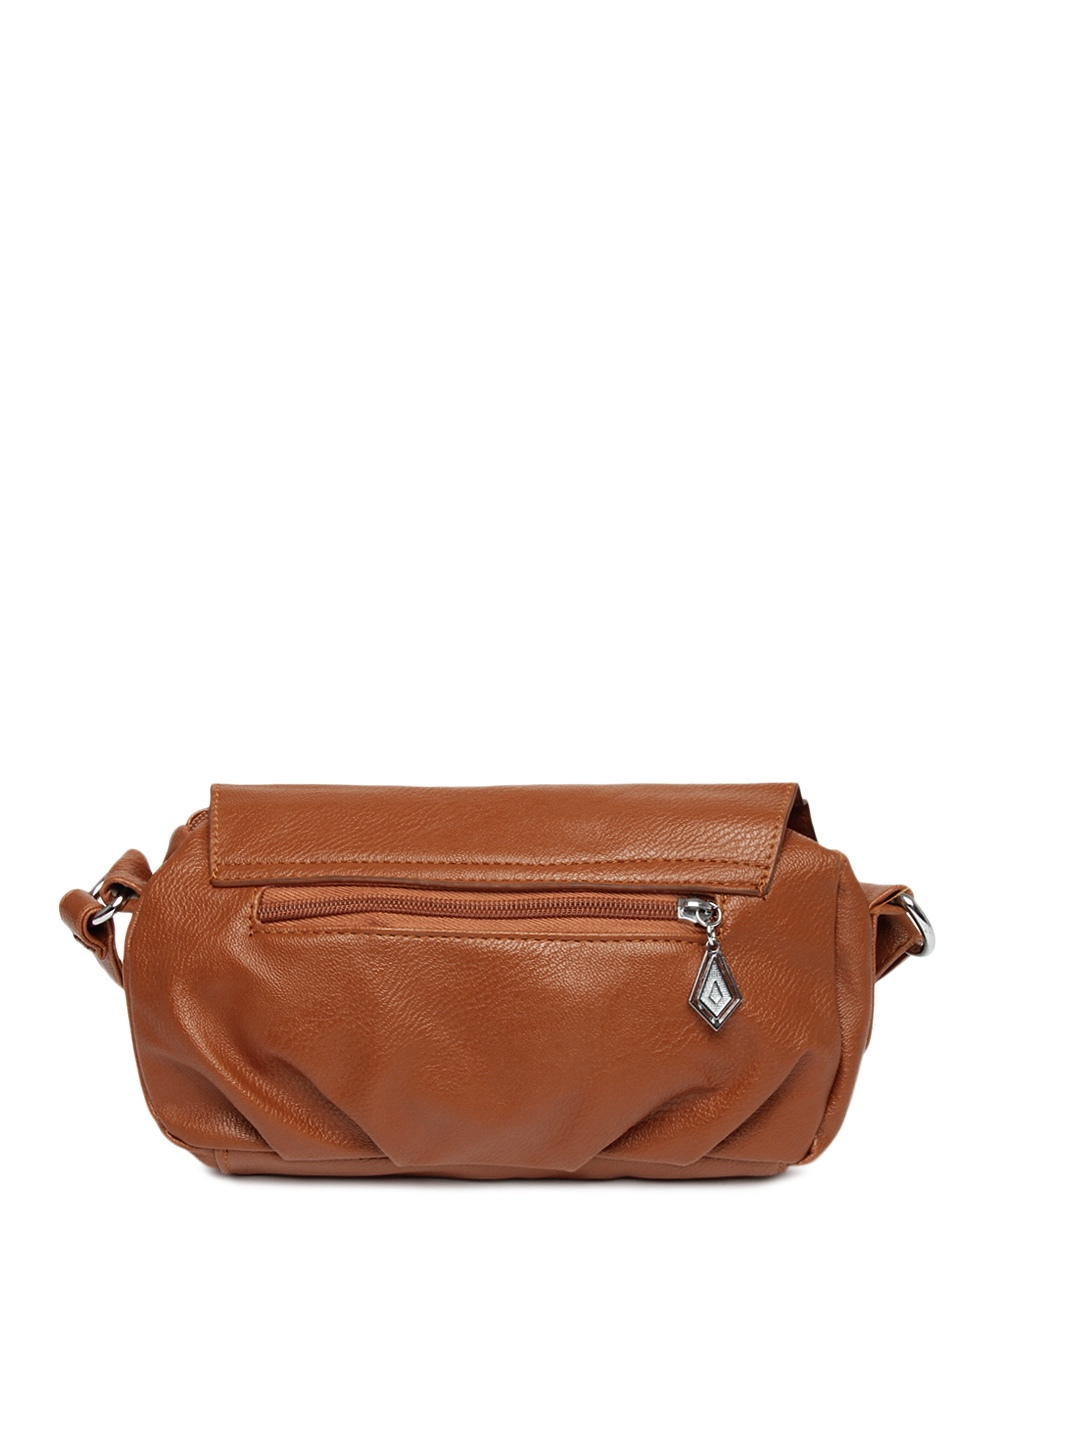 Buy DressBerry Brown Sling Bag 1280699 for women online in india ...